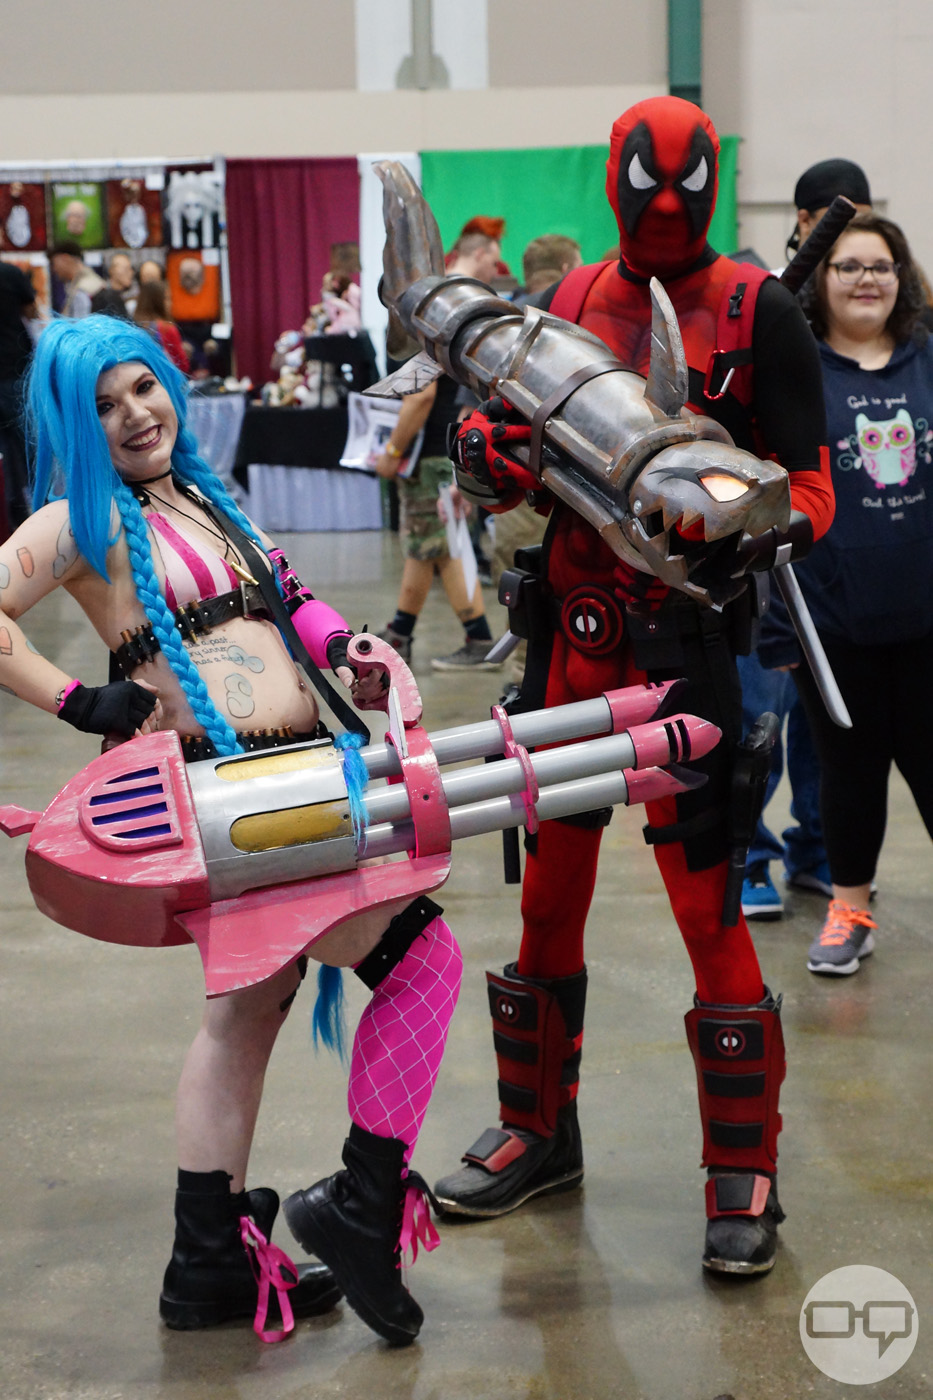 Planet-Comicon-2015-ProNerd-Cosplay-D1-13